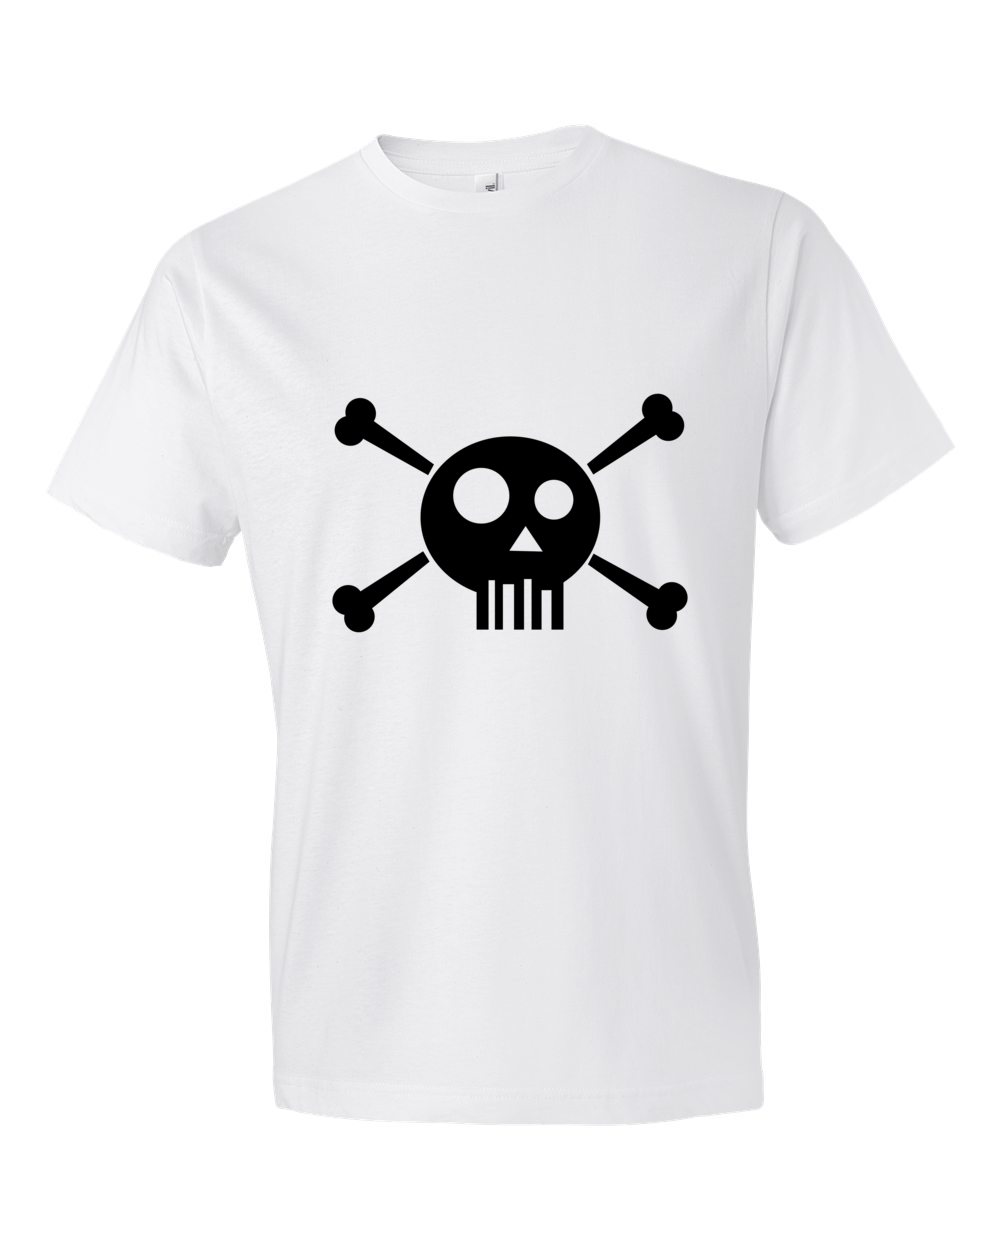 Pirates-Lightweight-Fashion-Short-Sleeve-T-Shirt-by-iTEE.com-3